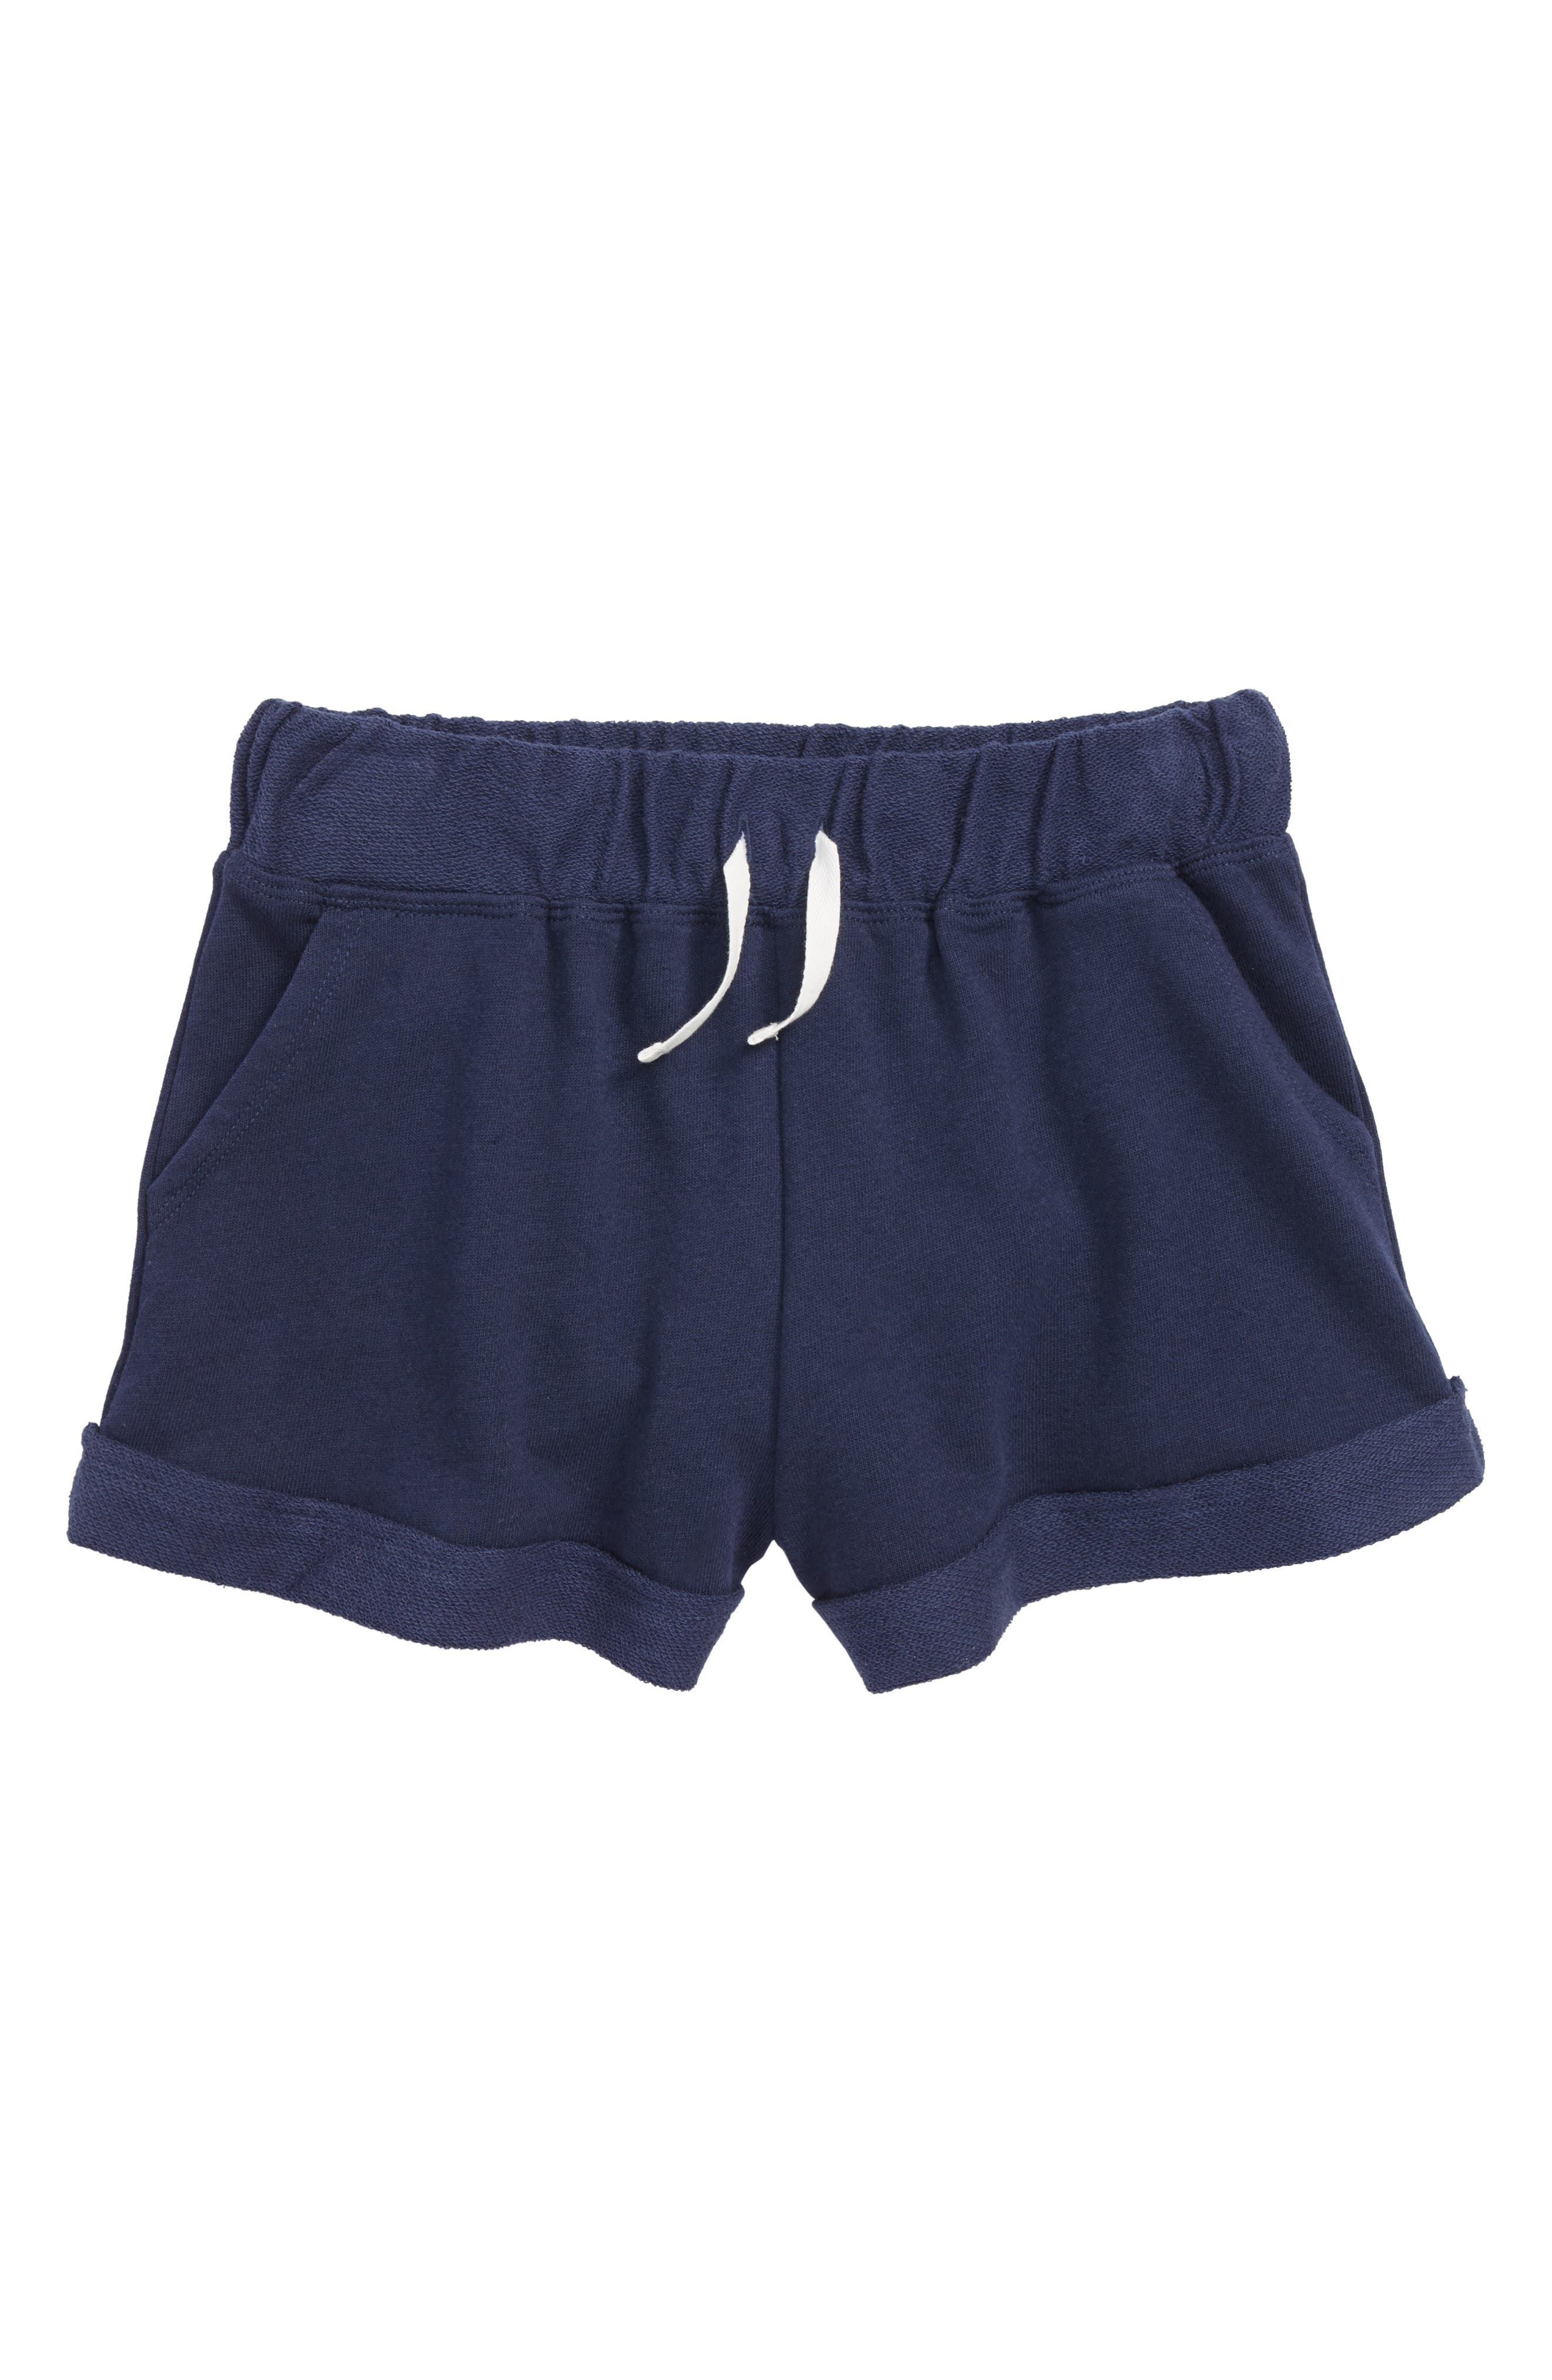 Cuff French Terry Shorts,                             Main thumbnail 1, color,                             Navy